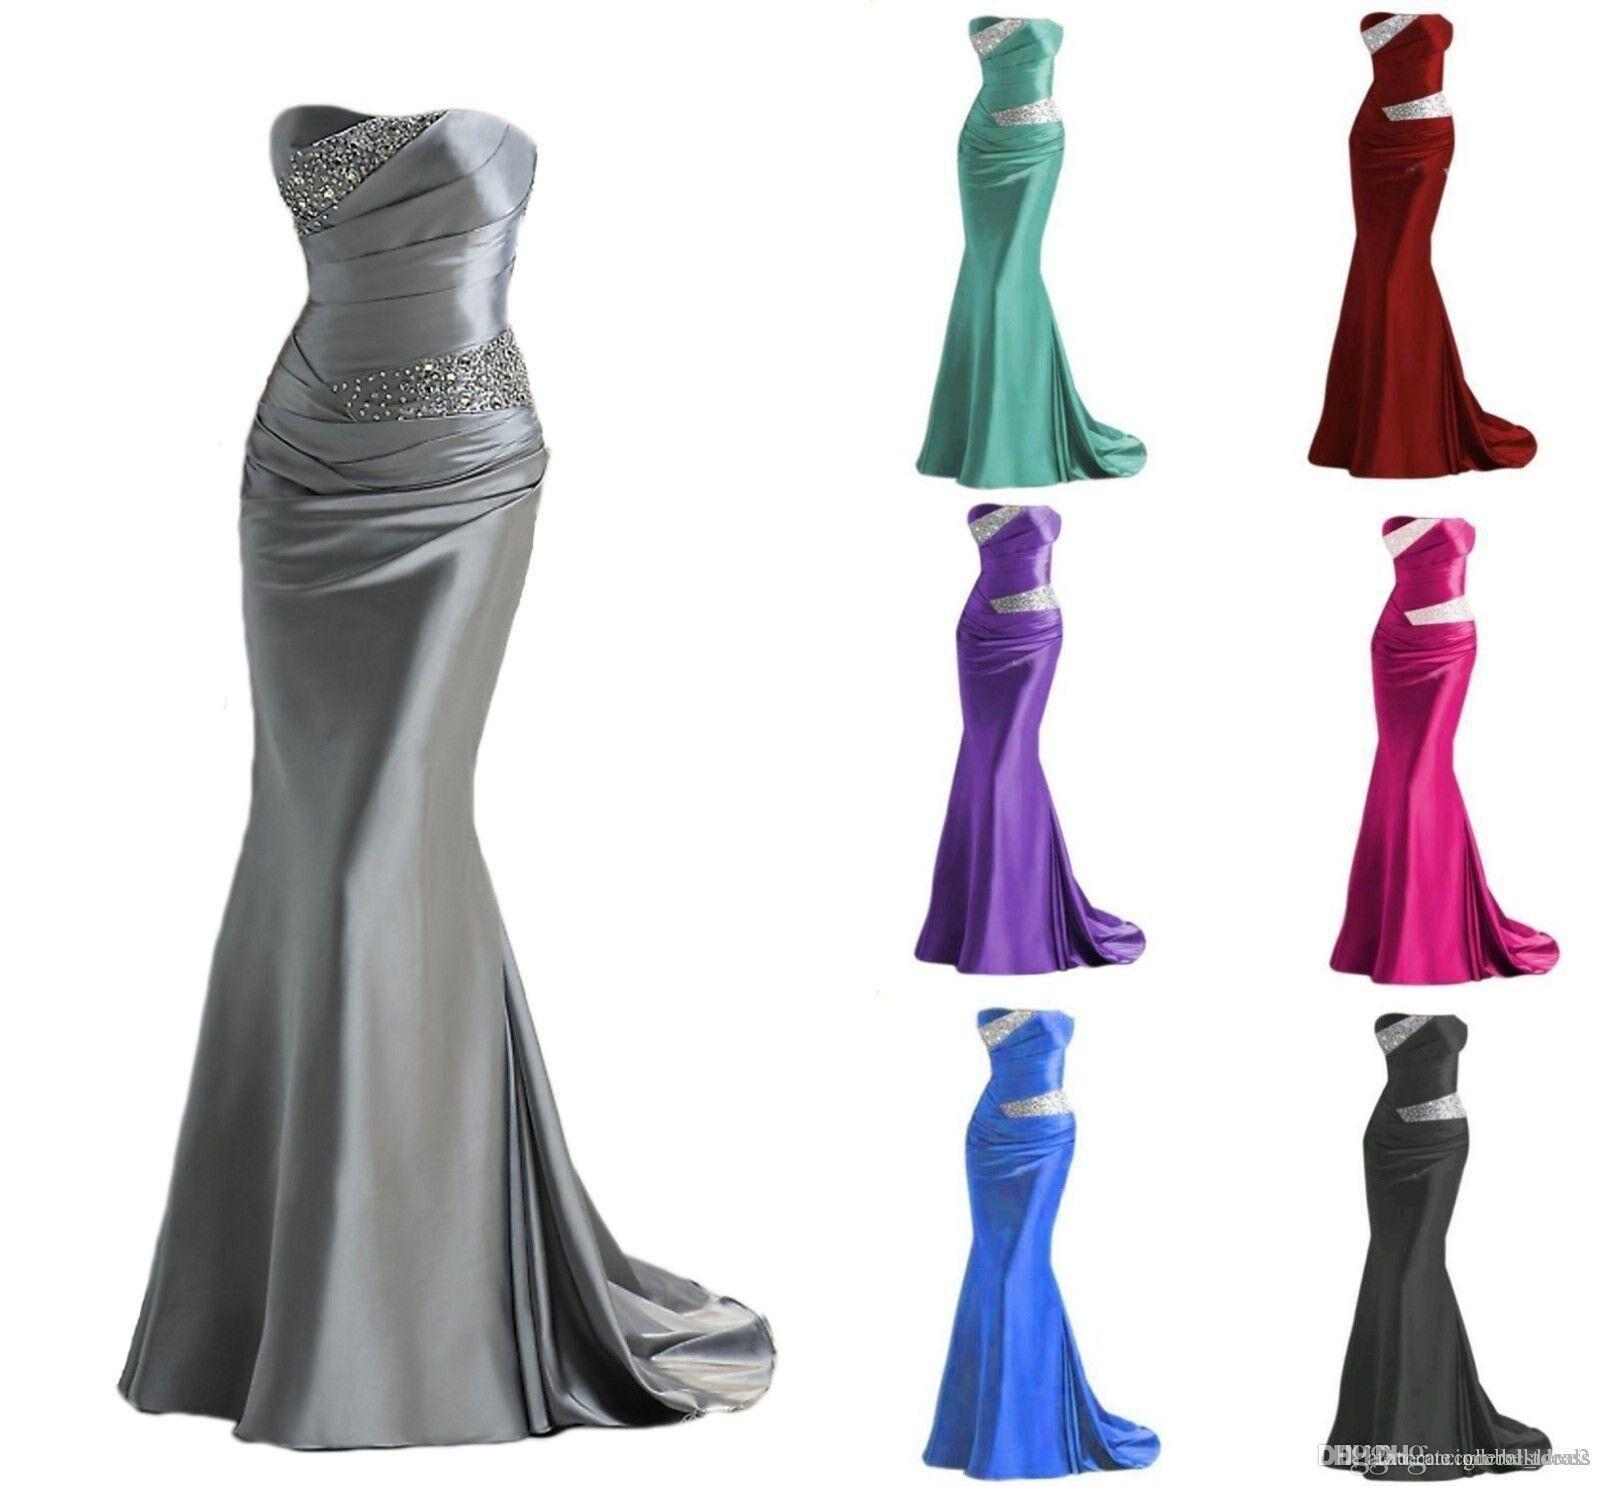 Hot selling 2017 silver grey burundy mermaid bridesmaid dresses hot selling 2017 silver grey burundy mermaid bridesmaid dresses cheap long maid of honor dress evening prom gowns lace up beading modern bridesmaid dresses ombrellifo Image collections